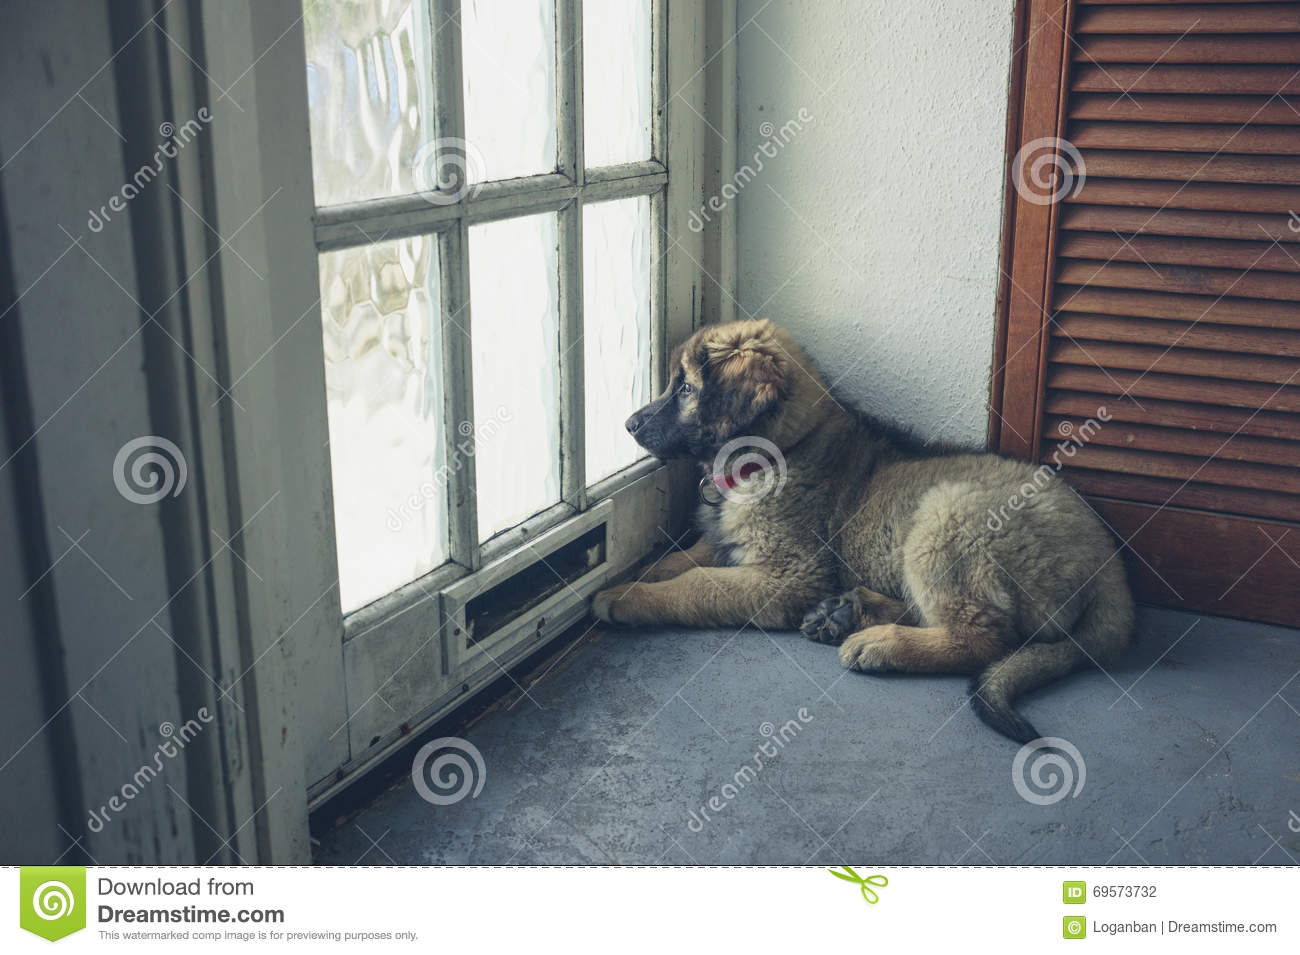 Royalty-Free Stock Photo & Leonberger Puppy Waiting By The Door Stock Photo - Image of furry ...